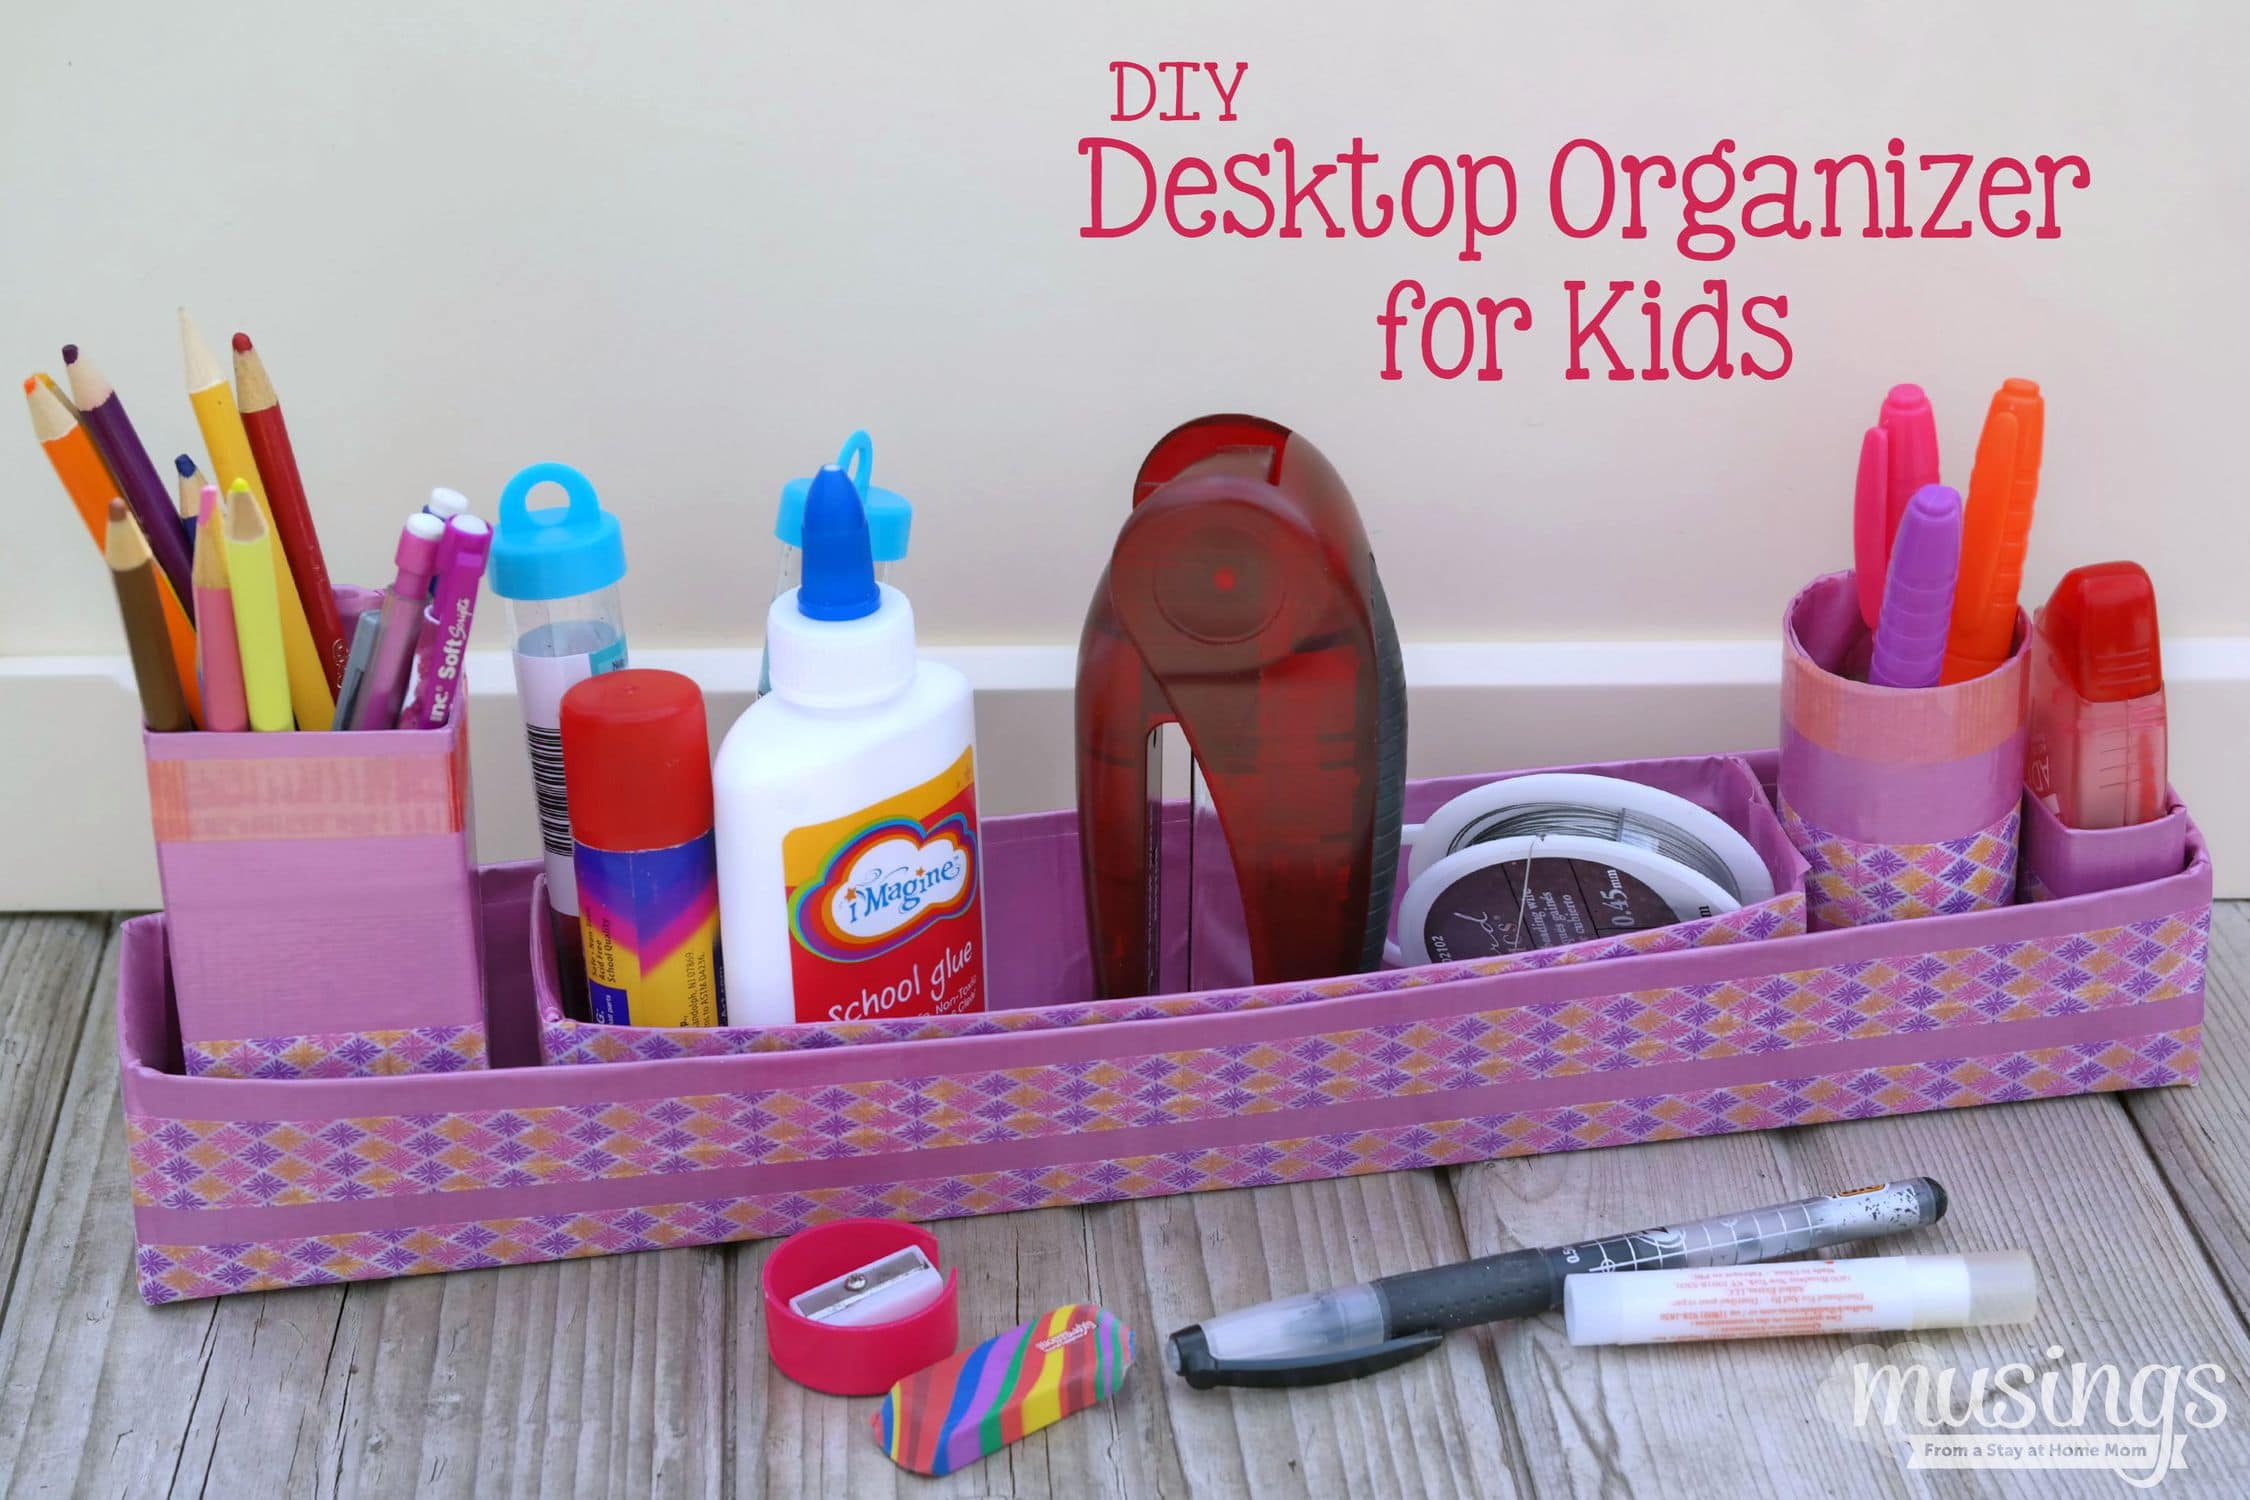 DIY Desktop Organizer for Kids